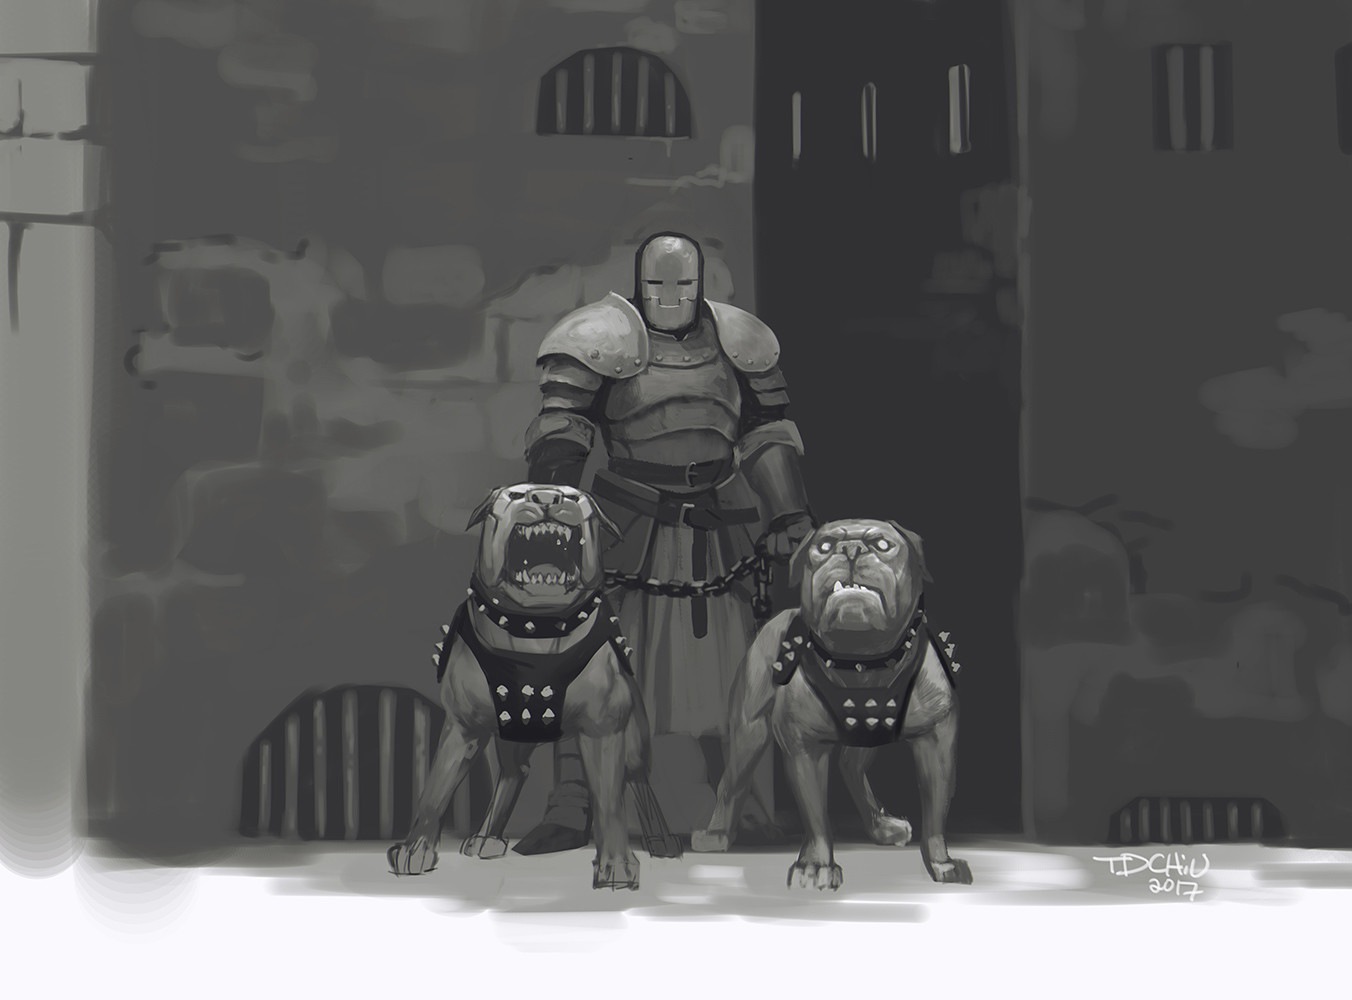 T d chiu bwsketch guarddogs